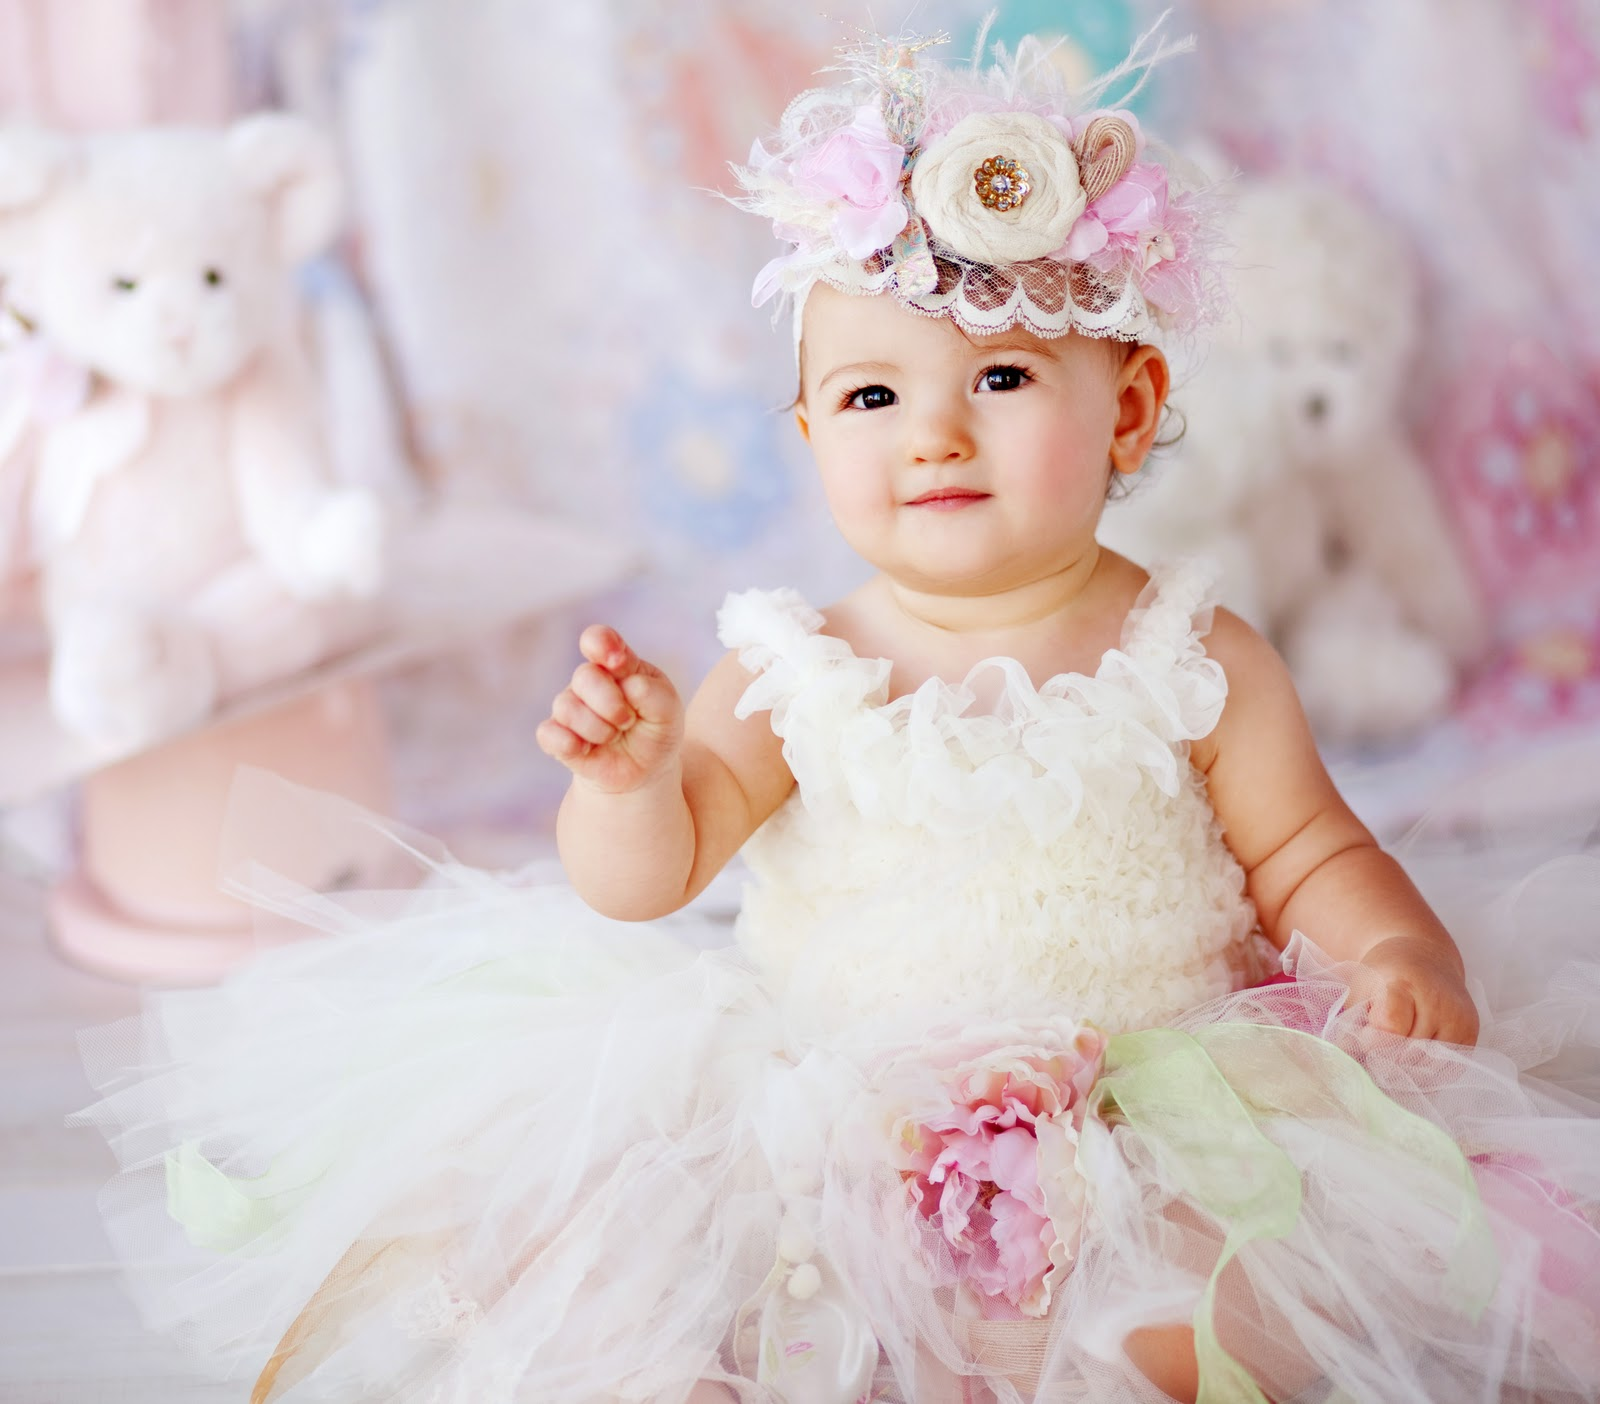 Cute and Lovely Babies Picutres to Download Free | Cute ...